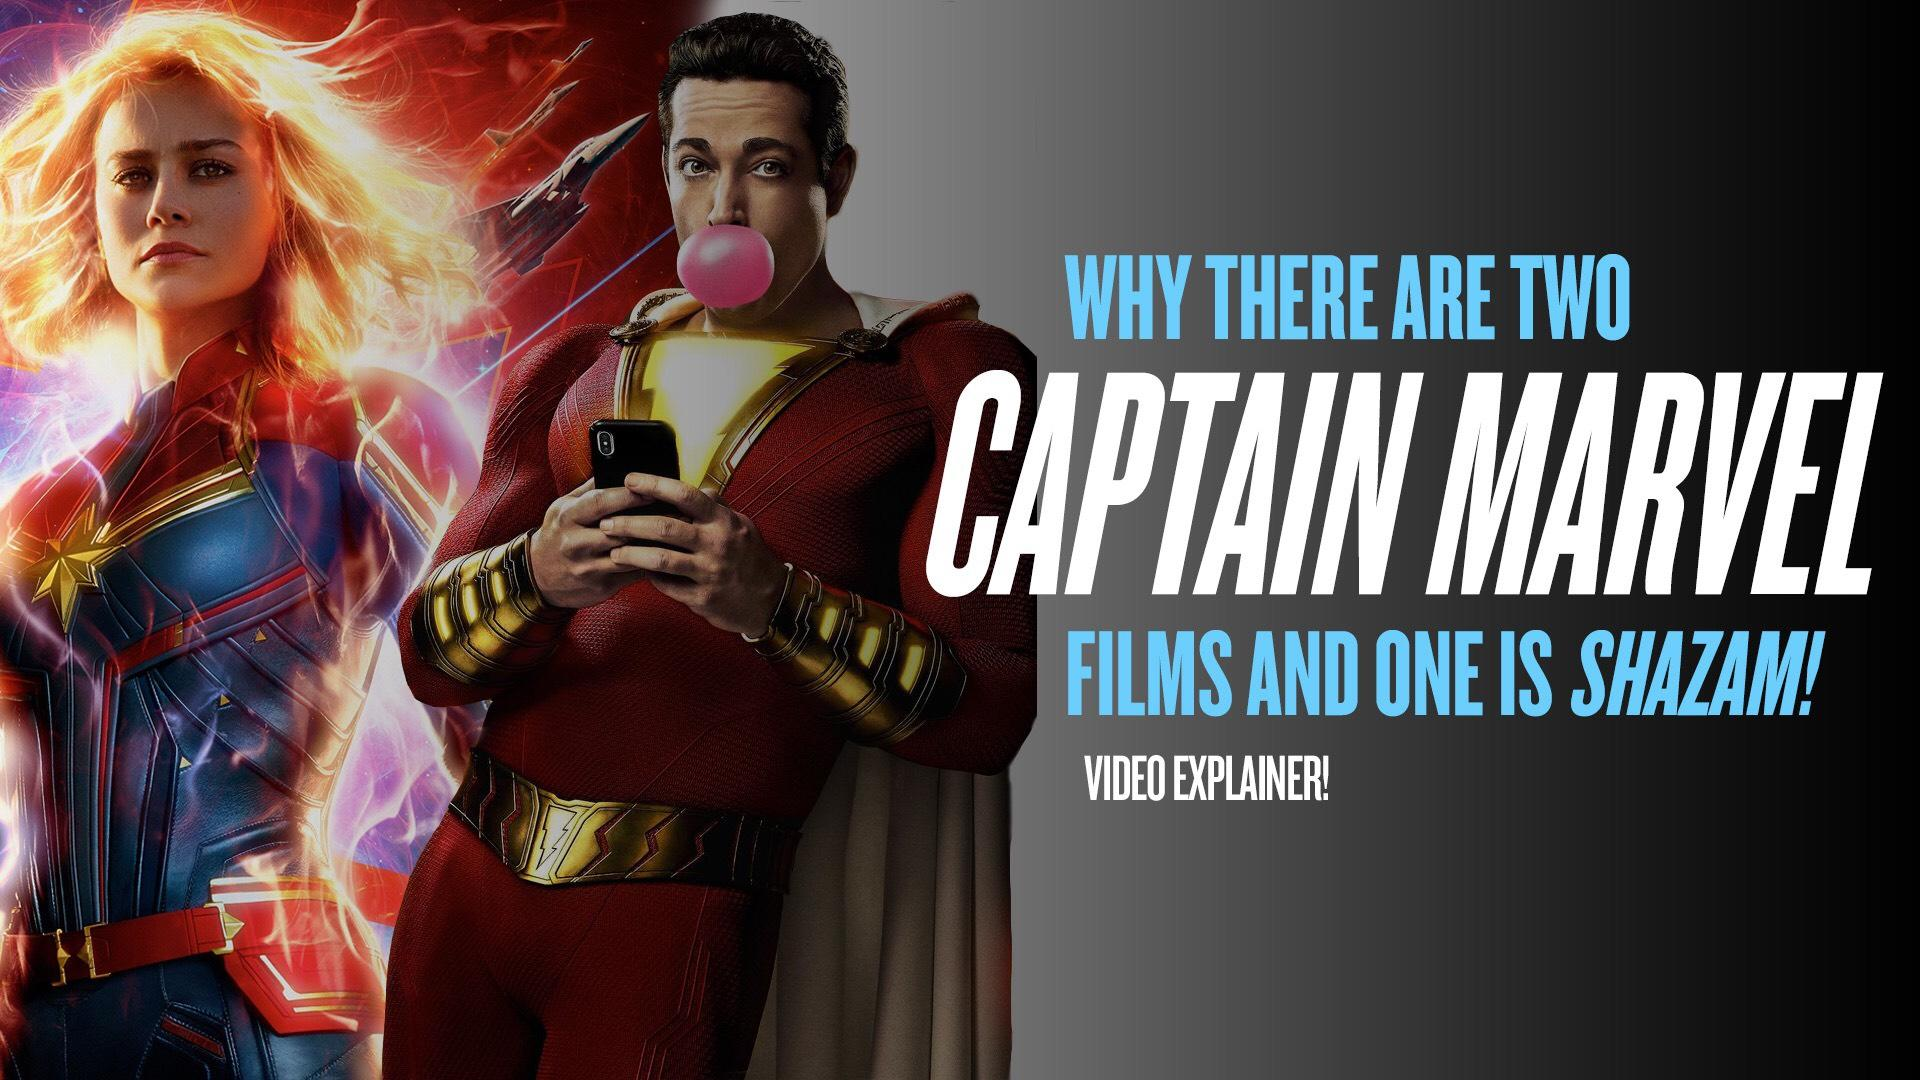 The Twisted Story Of How We Wound Up With 2 Captain Marvel Movies And Why One Is Called Shazam